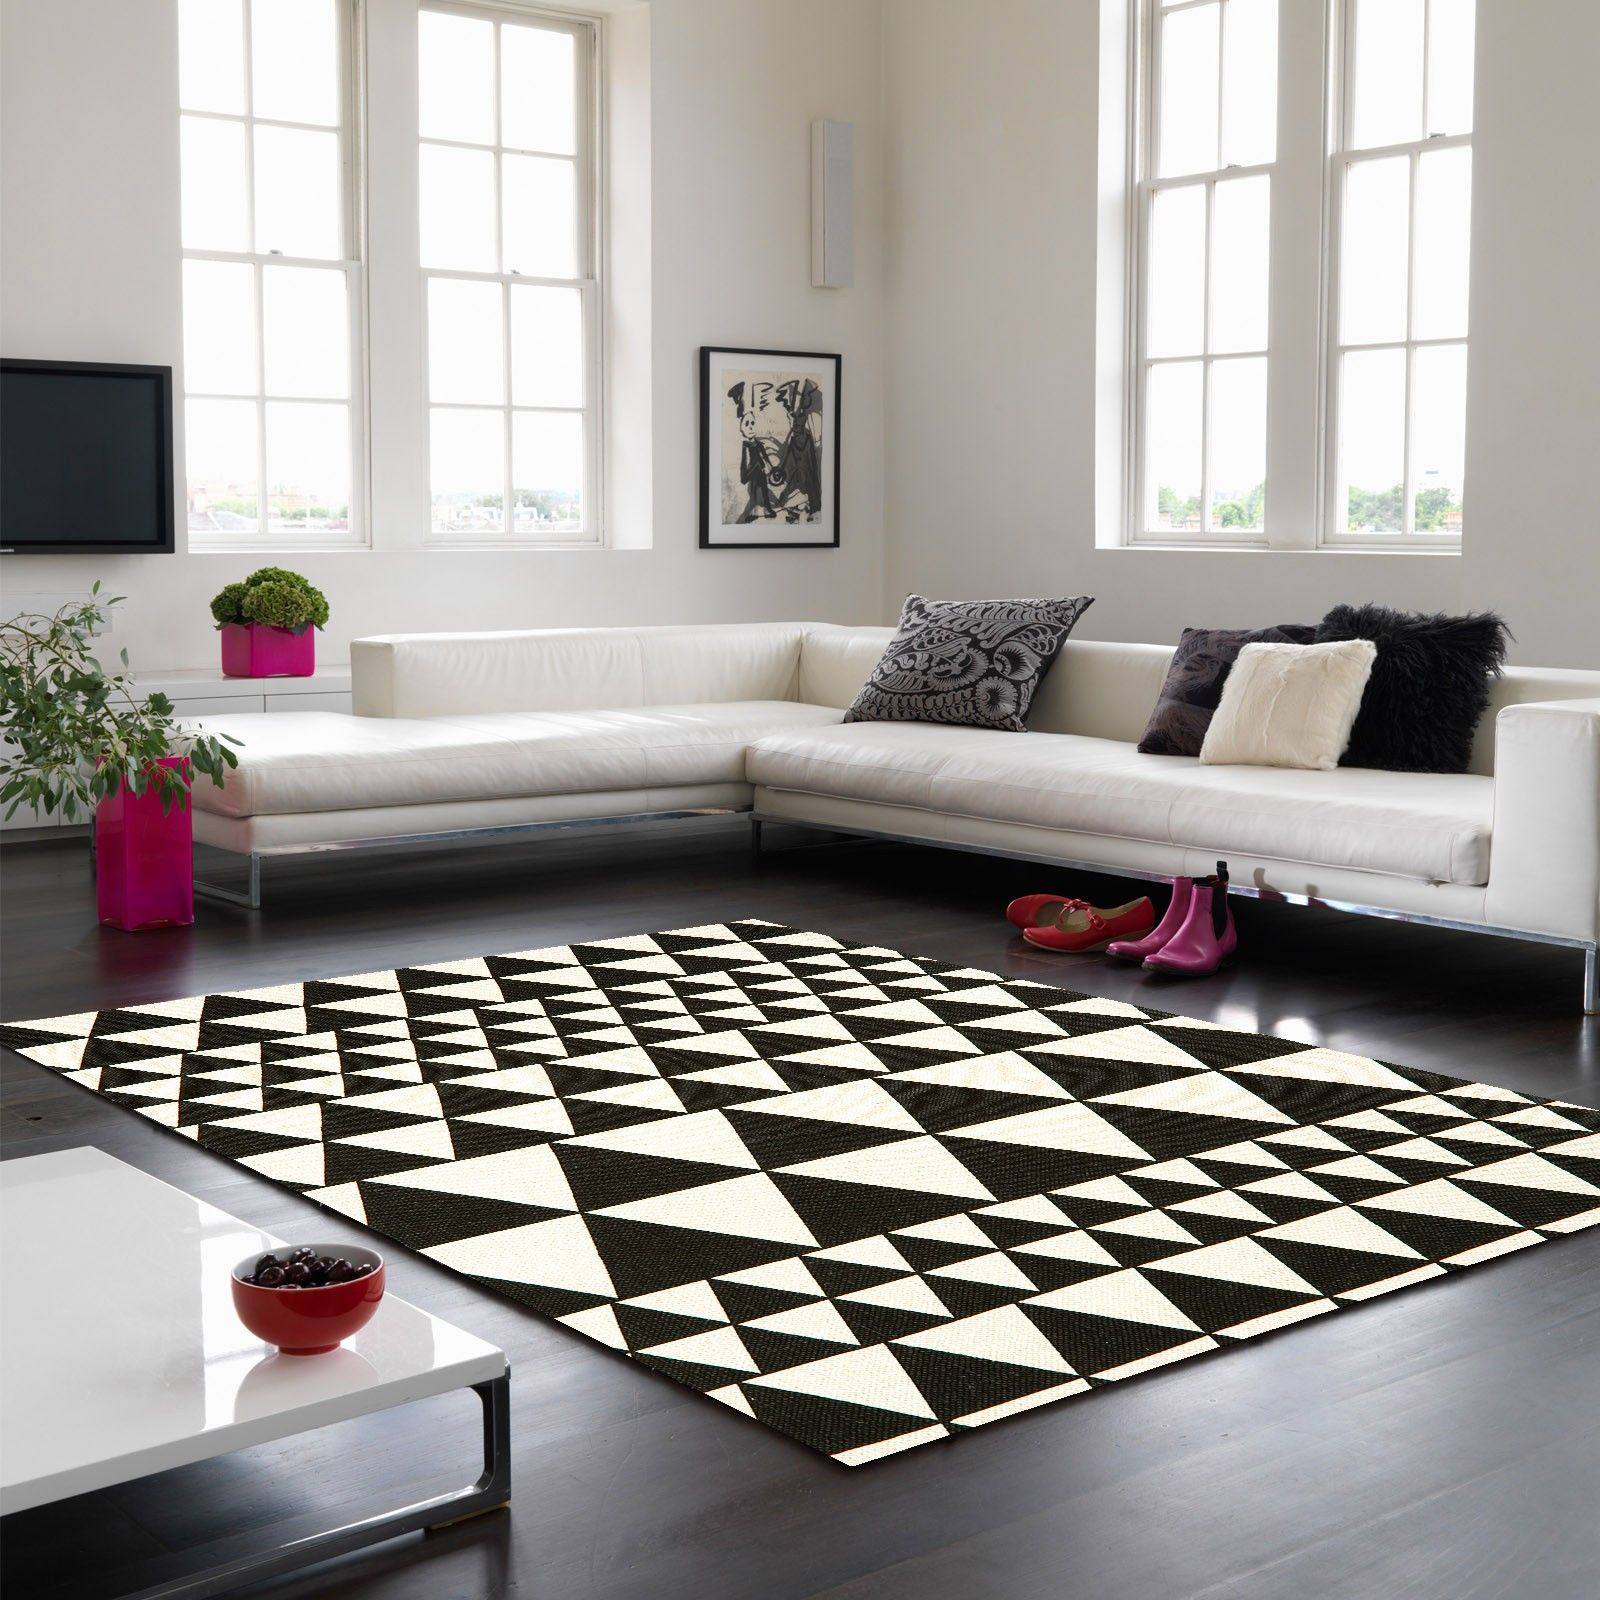 Onix On06 Triangles Black White Rug By Asiatic Rugs In Living Room Stripe Rug Living Room Contemporary Rug